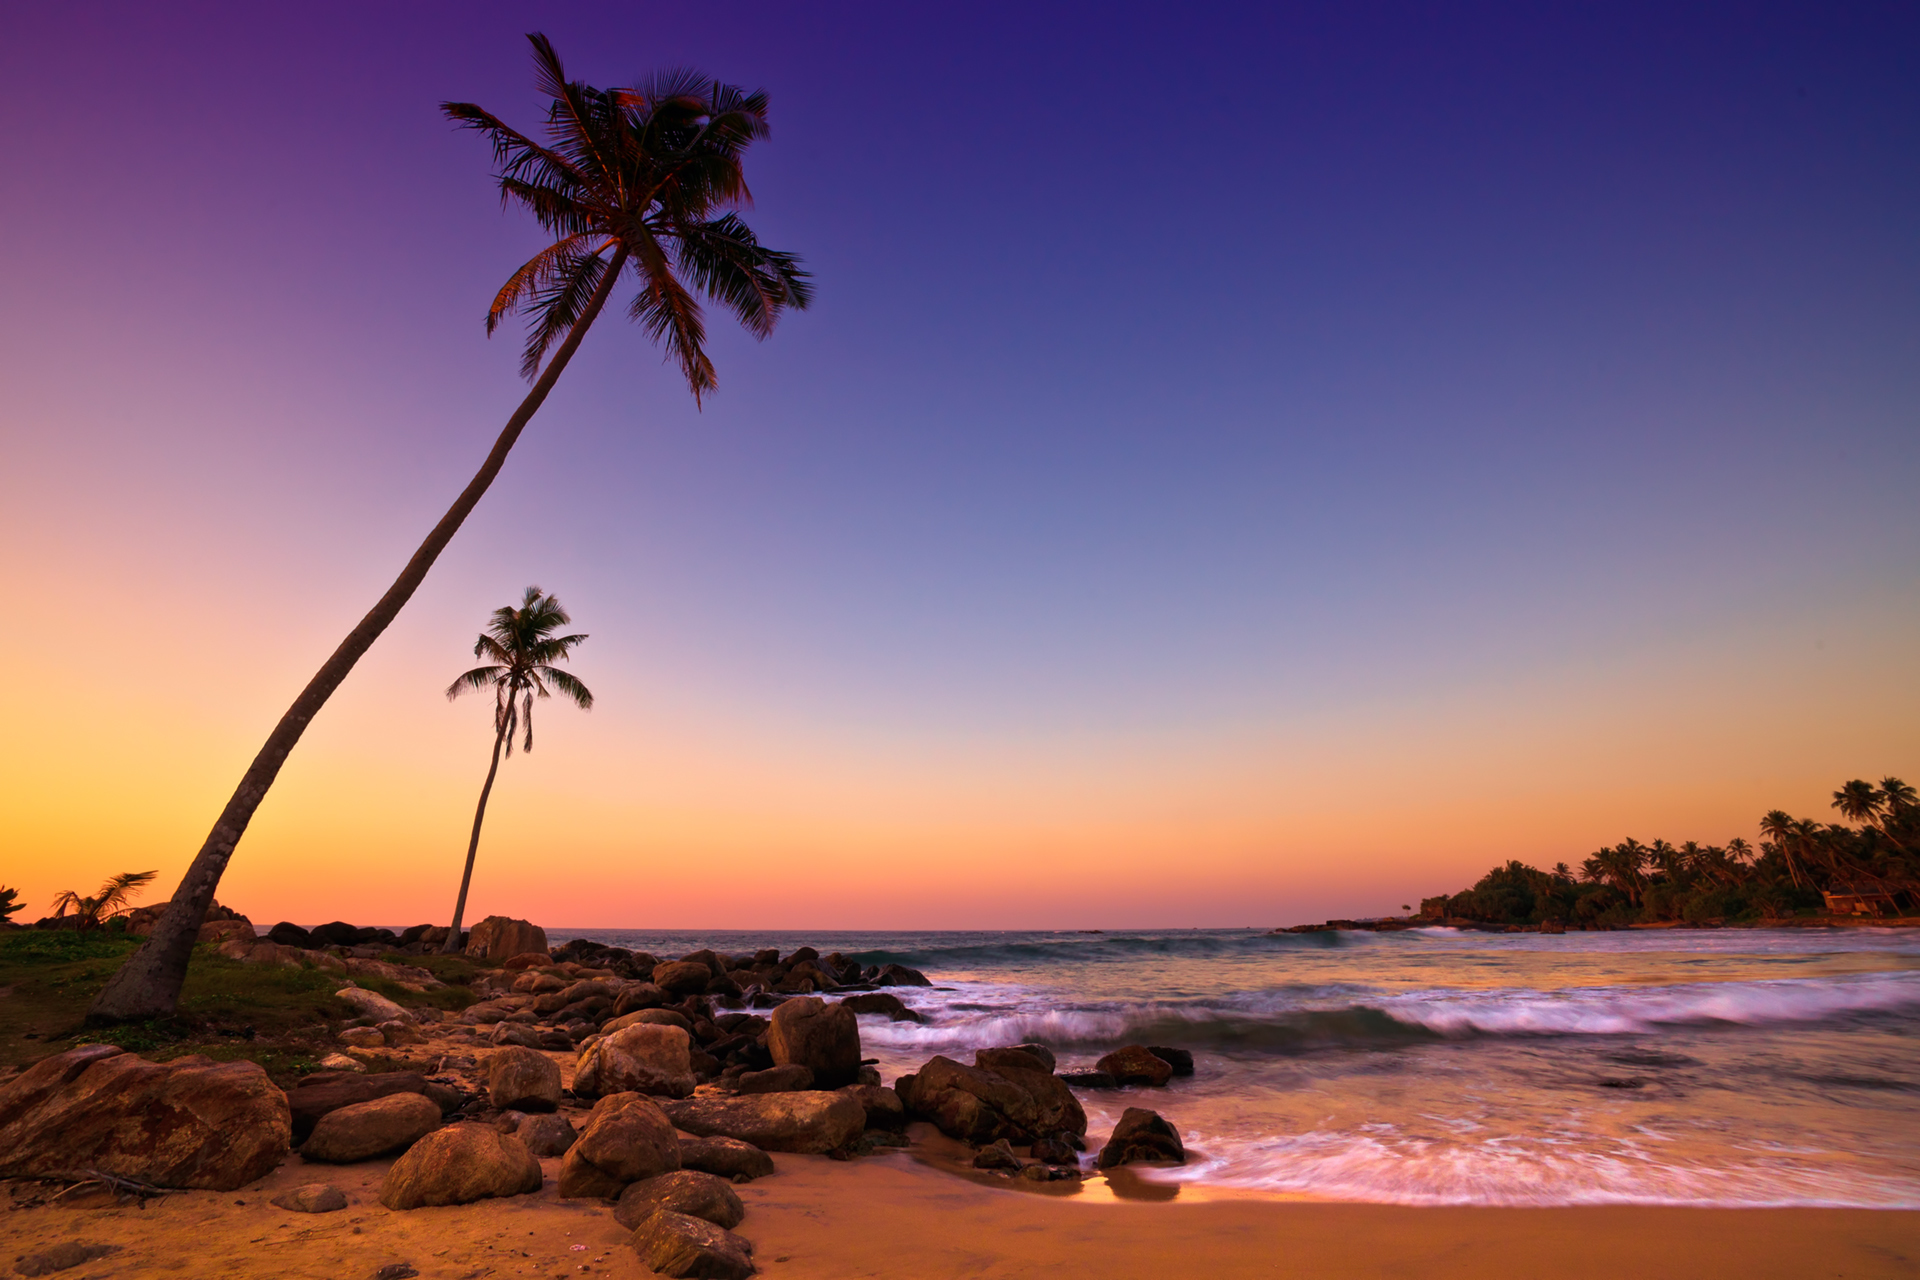 Sri Lanka Hd Wallpaper 1920x1280